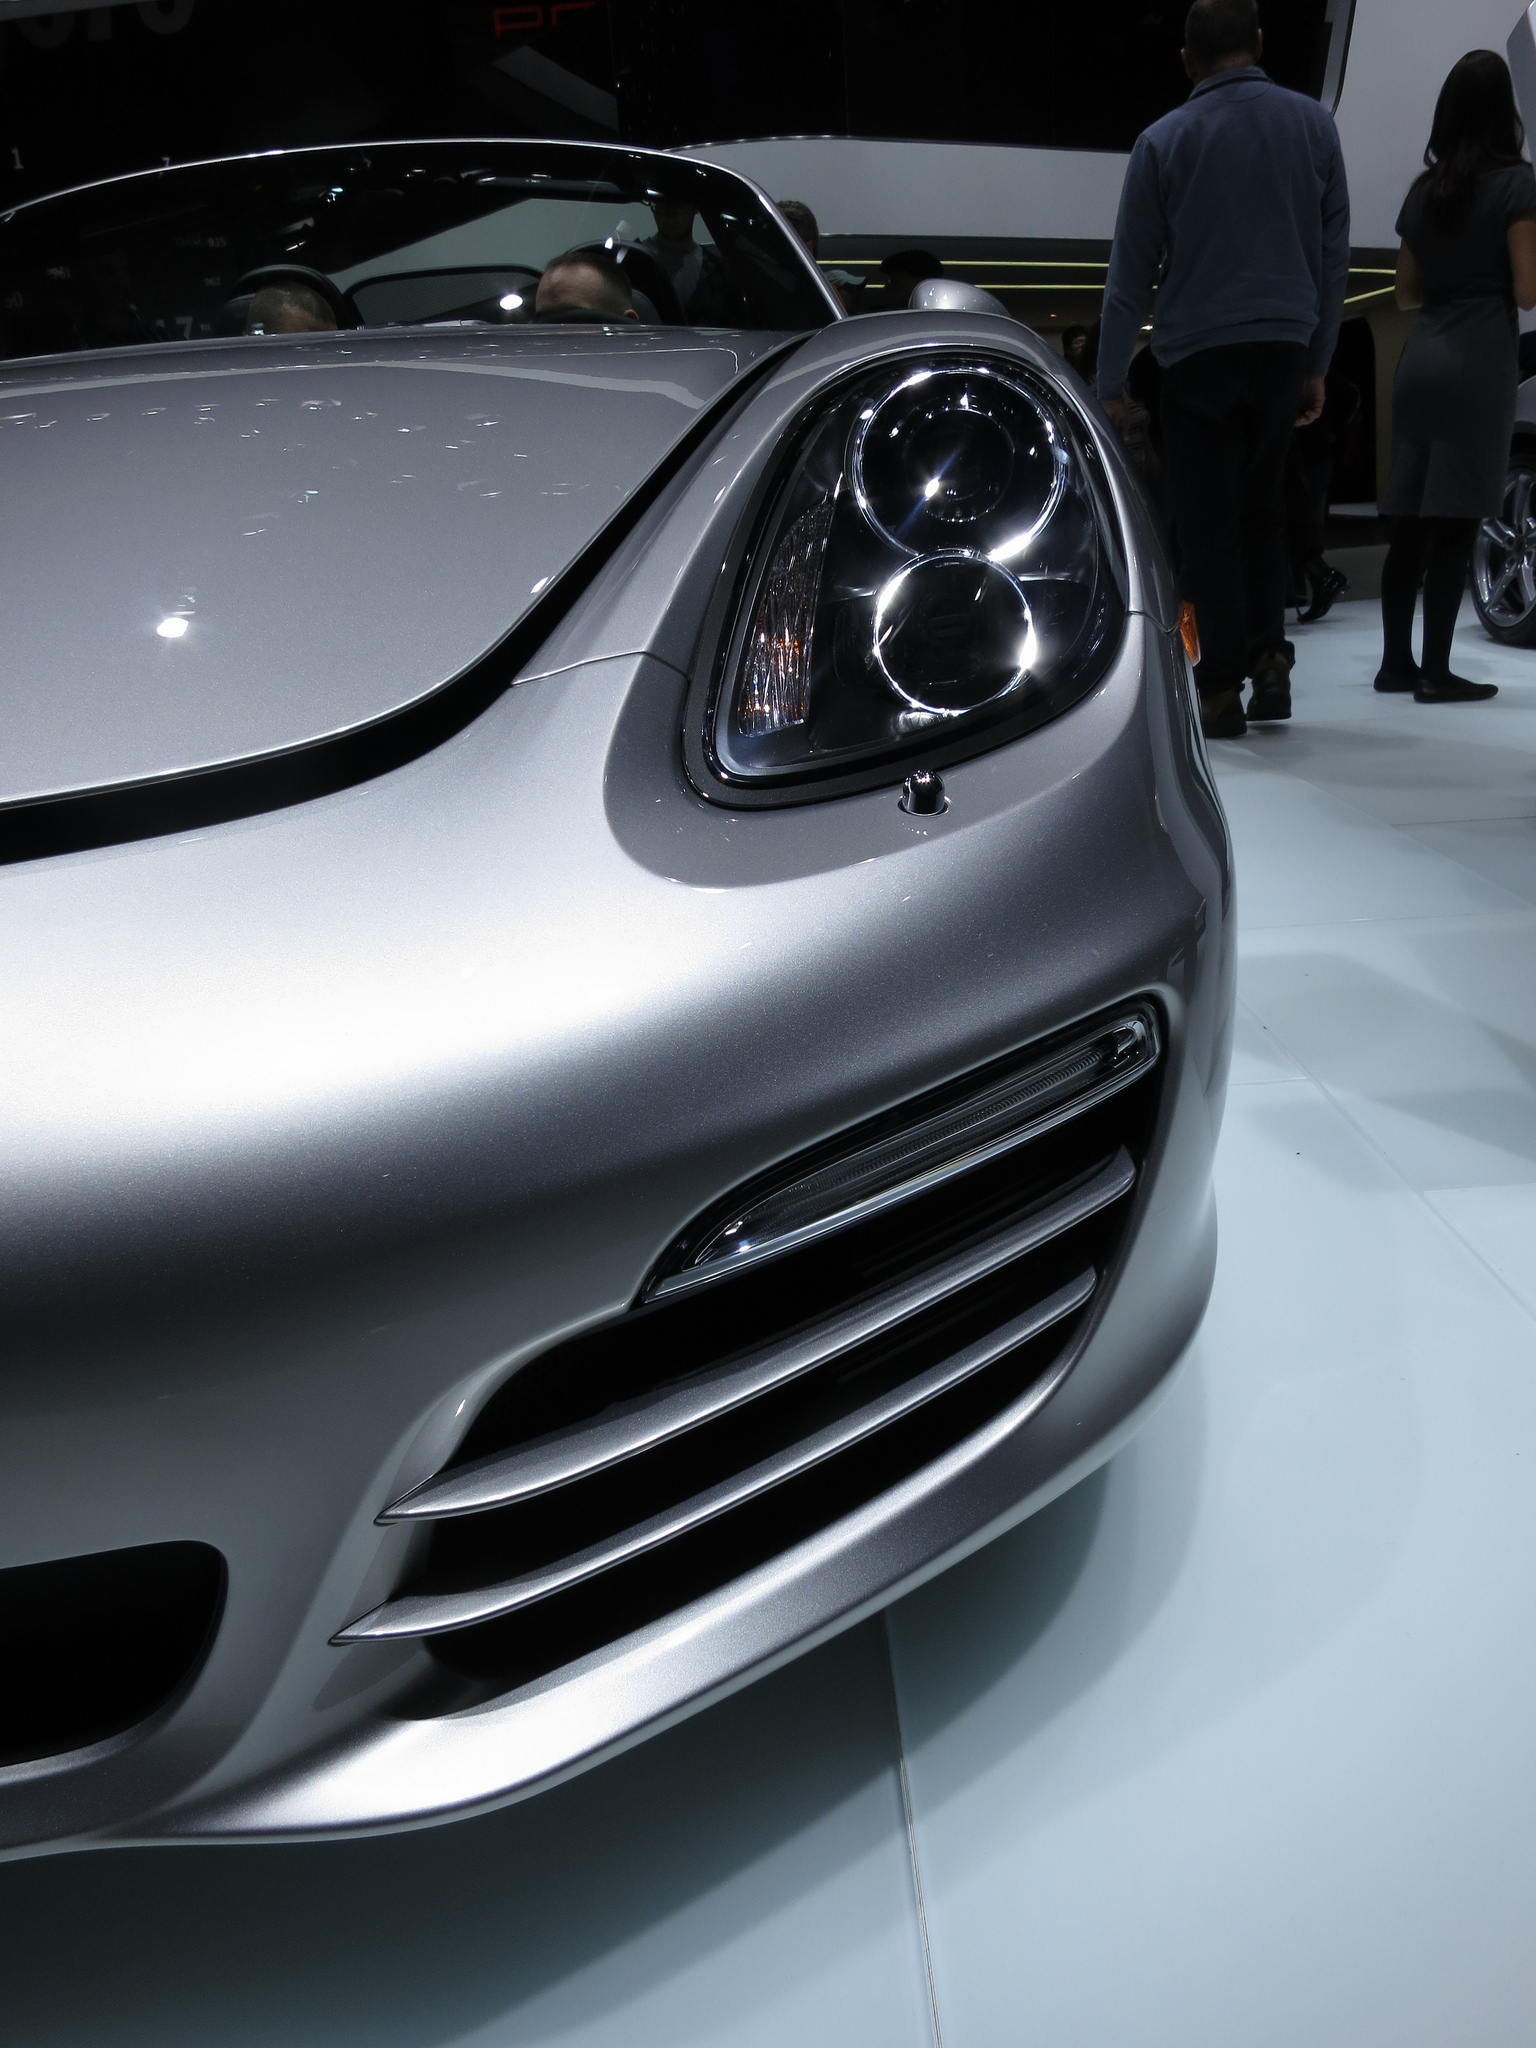 2013-porsche-cayman-at-naias-2013-by-shaessig